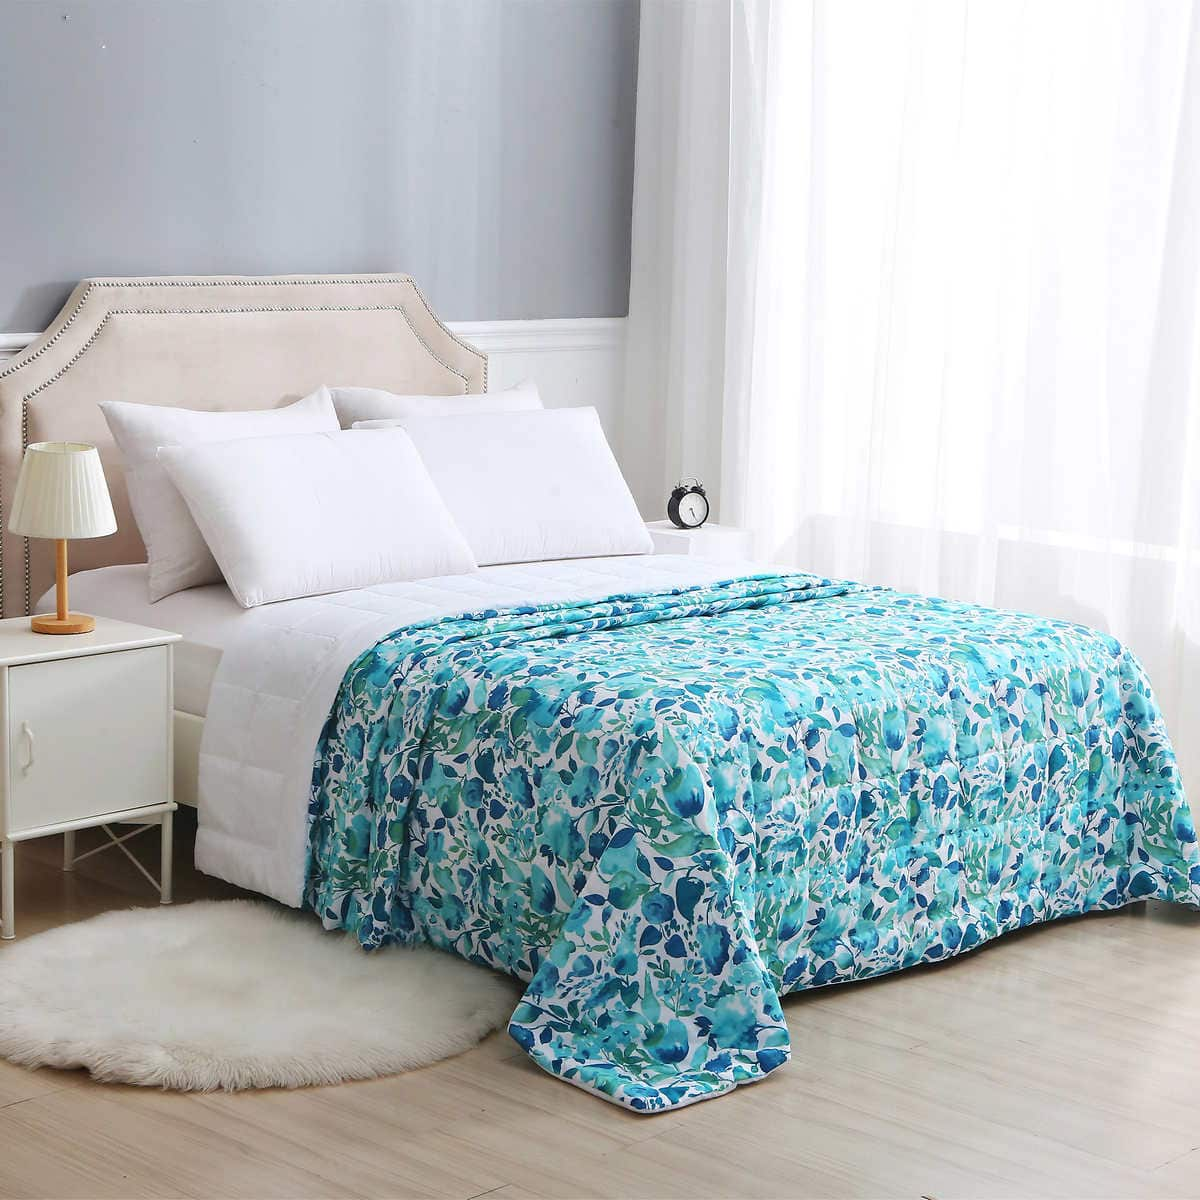 Reversible Down Alternative Blanket by Charisma $17.99 at Costco